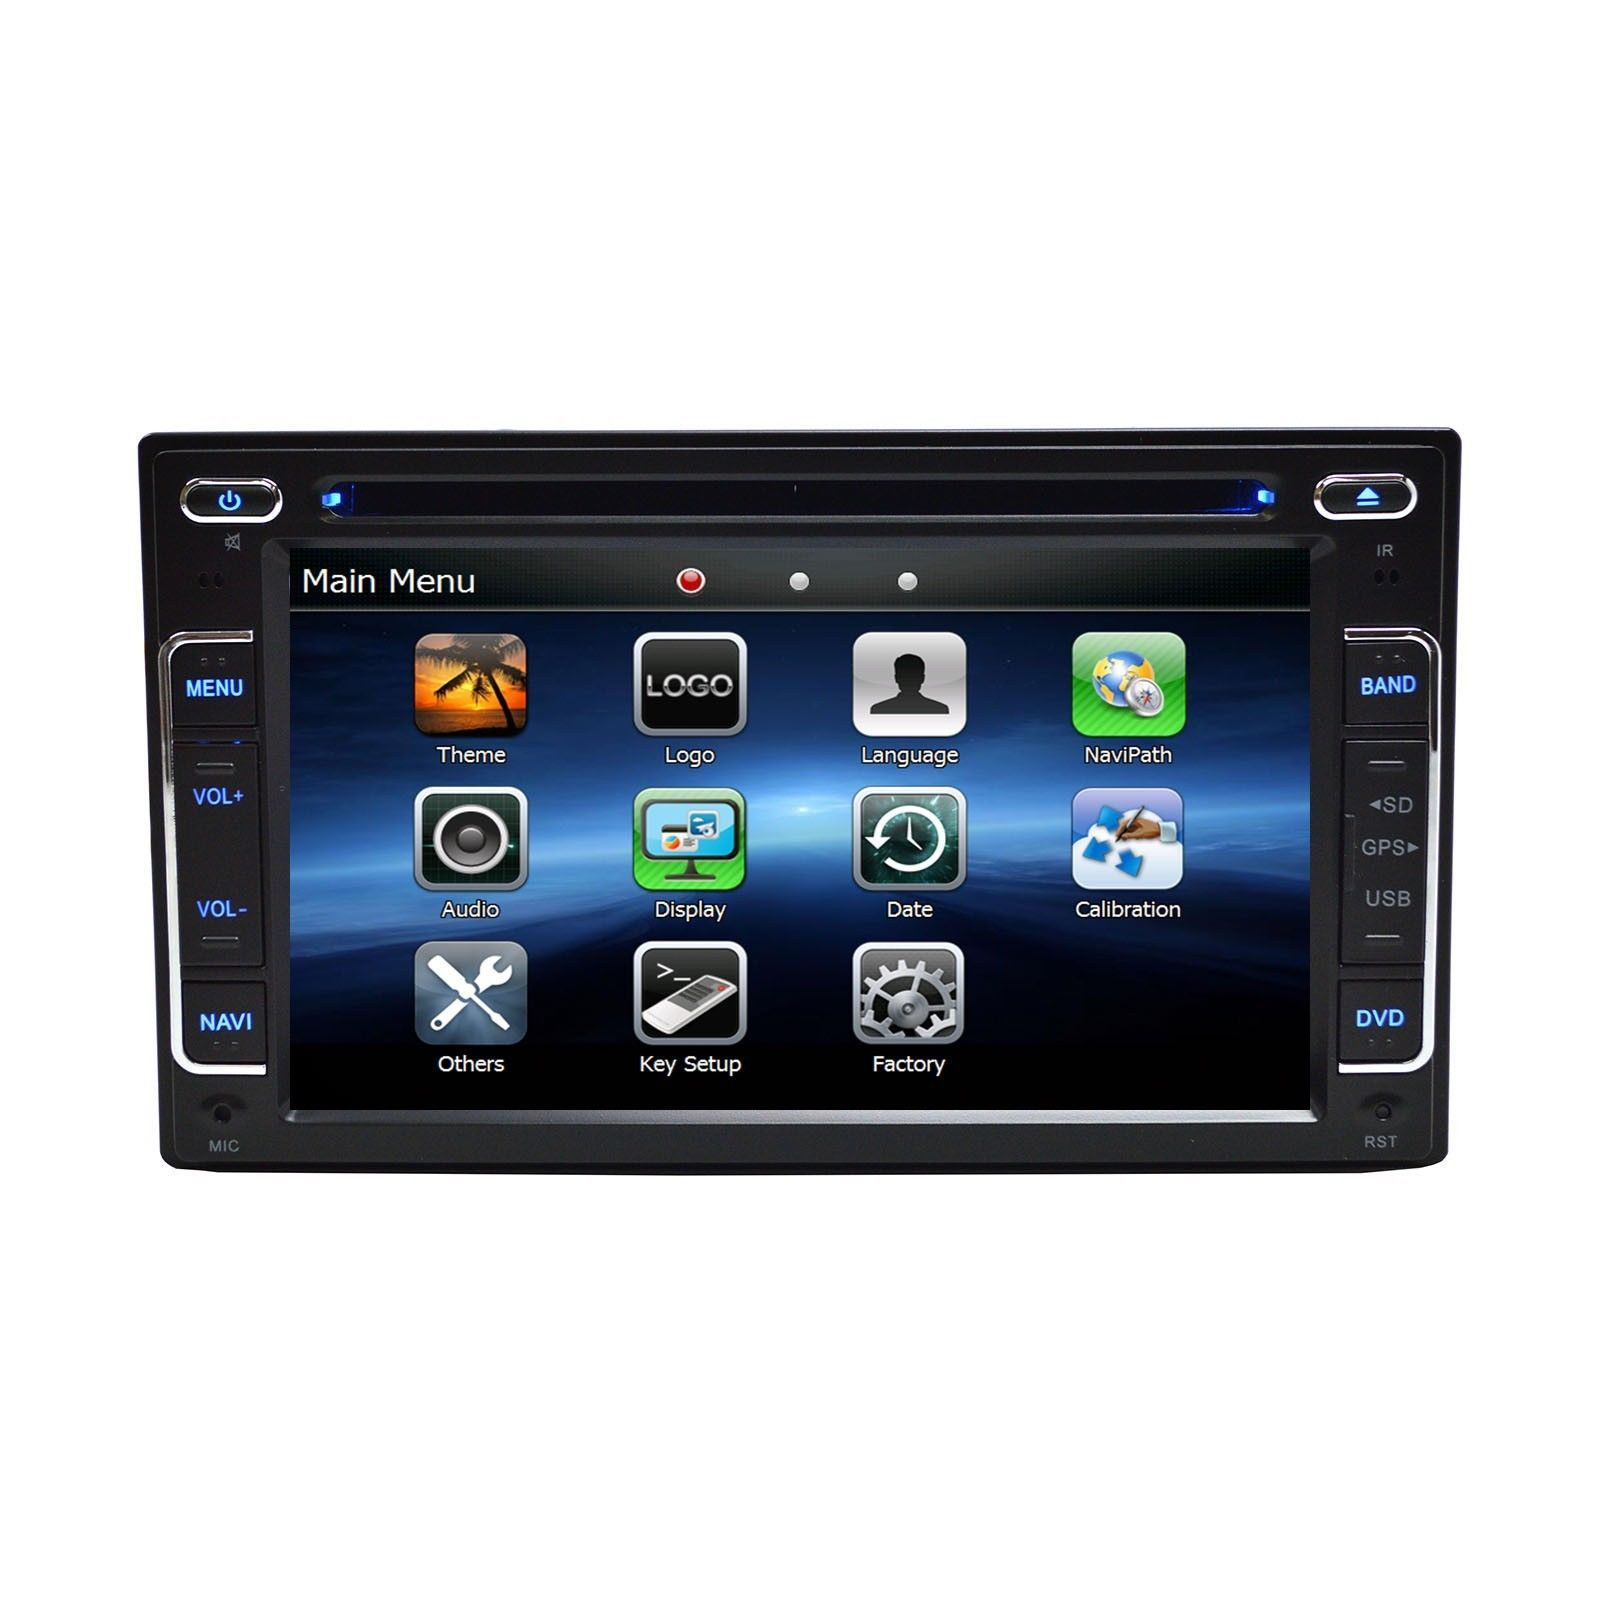 """6.2"""" DVD Navigation Touchscreen Multimedia Radio for 2012 Ford Taurus image 3"""